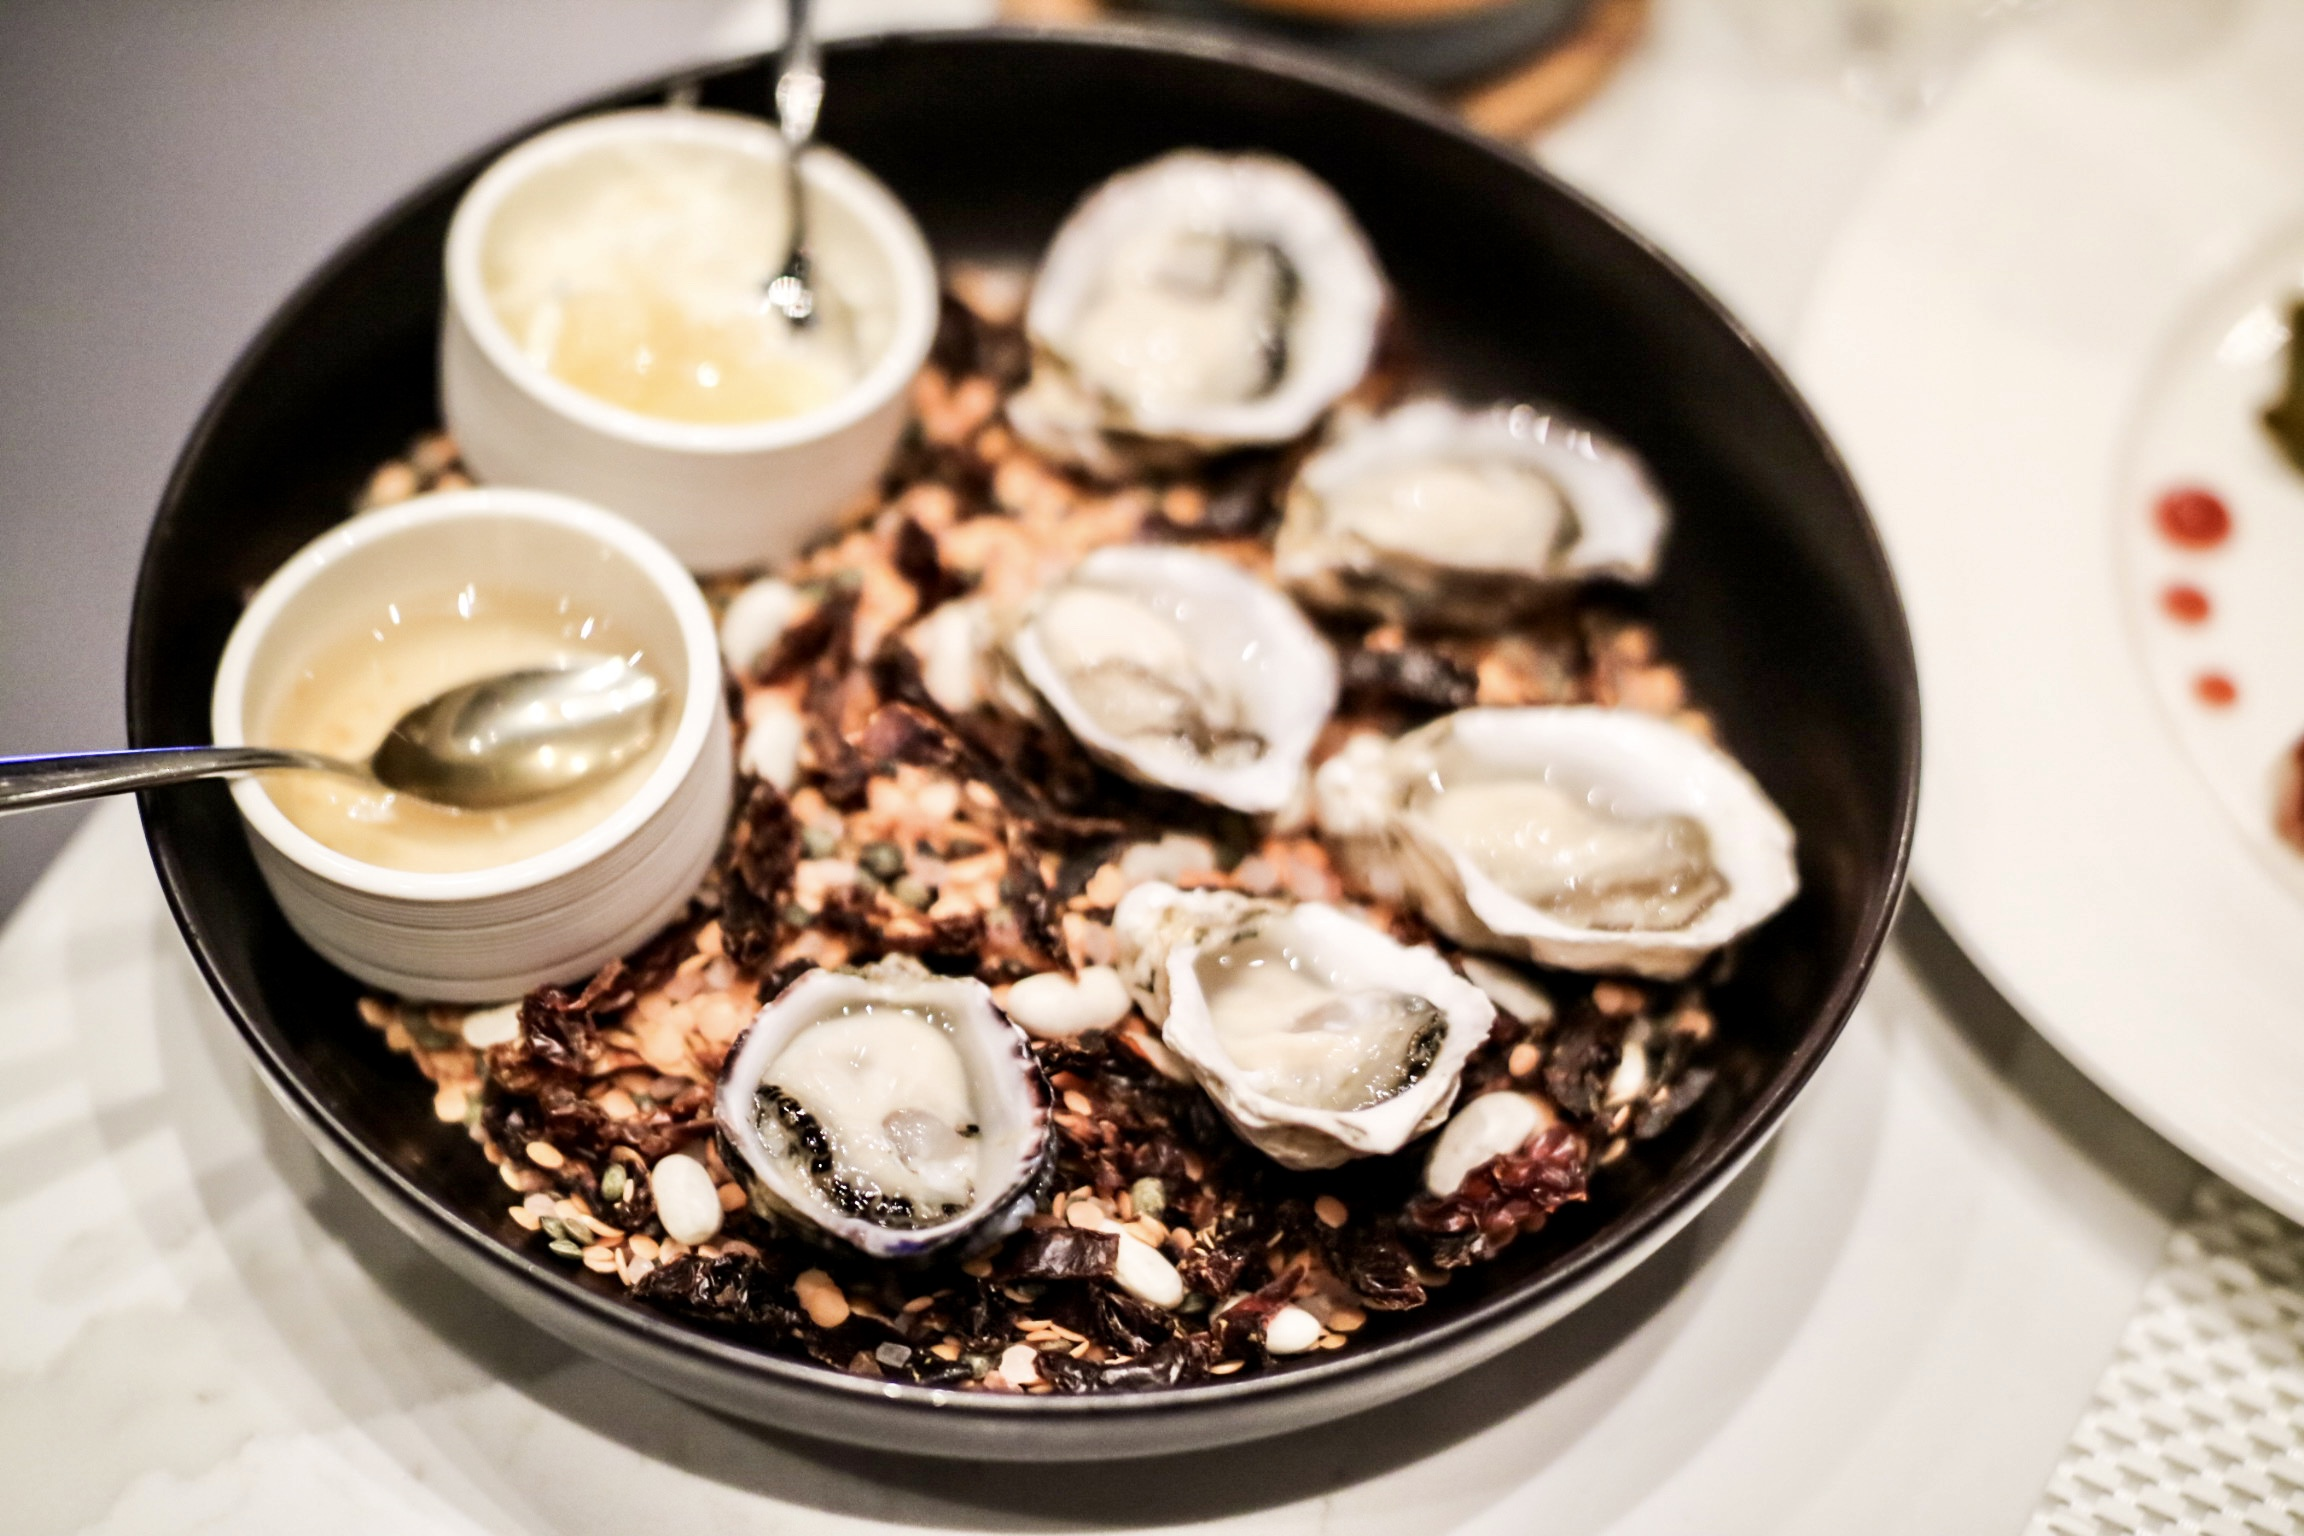 Fresh Oysters / Huitres